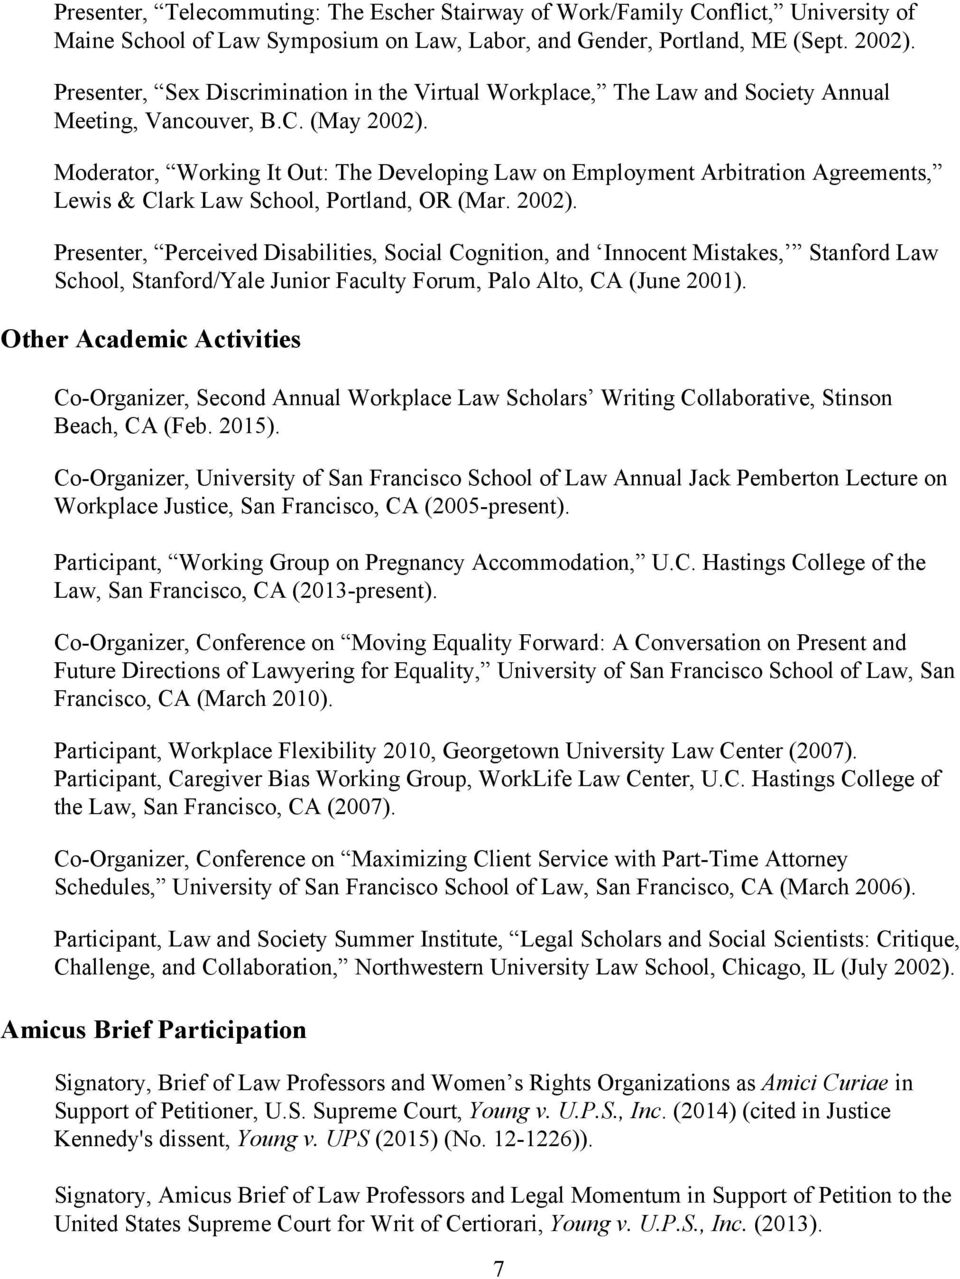 Moderator, Working It Out: The Developing Law on Employment Arbitration Agreements, Lewis & Clark Law School, Portland, OR (Mar. 2002).